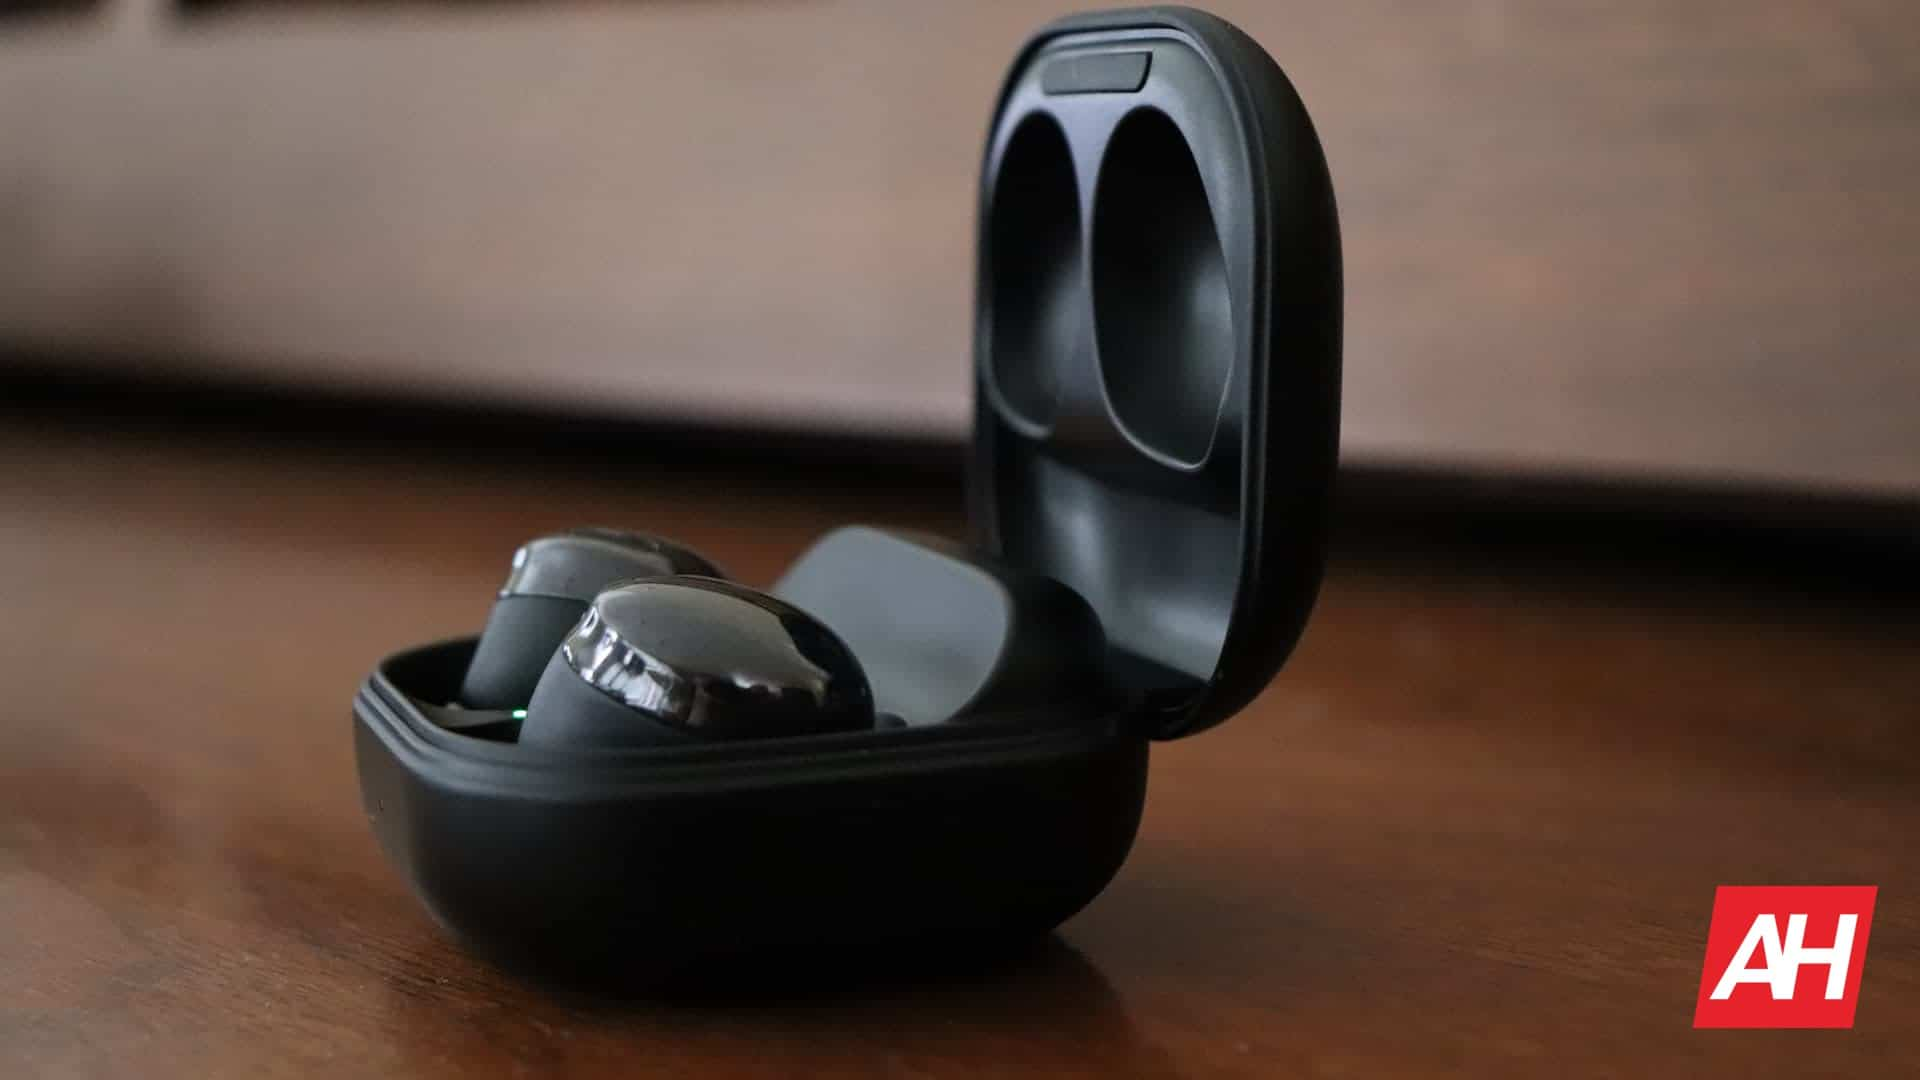 01 2 Samsung Galaxy Buds Pro review hardware AH DG 2021